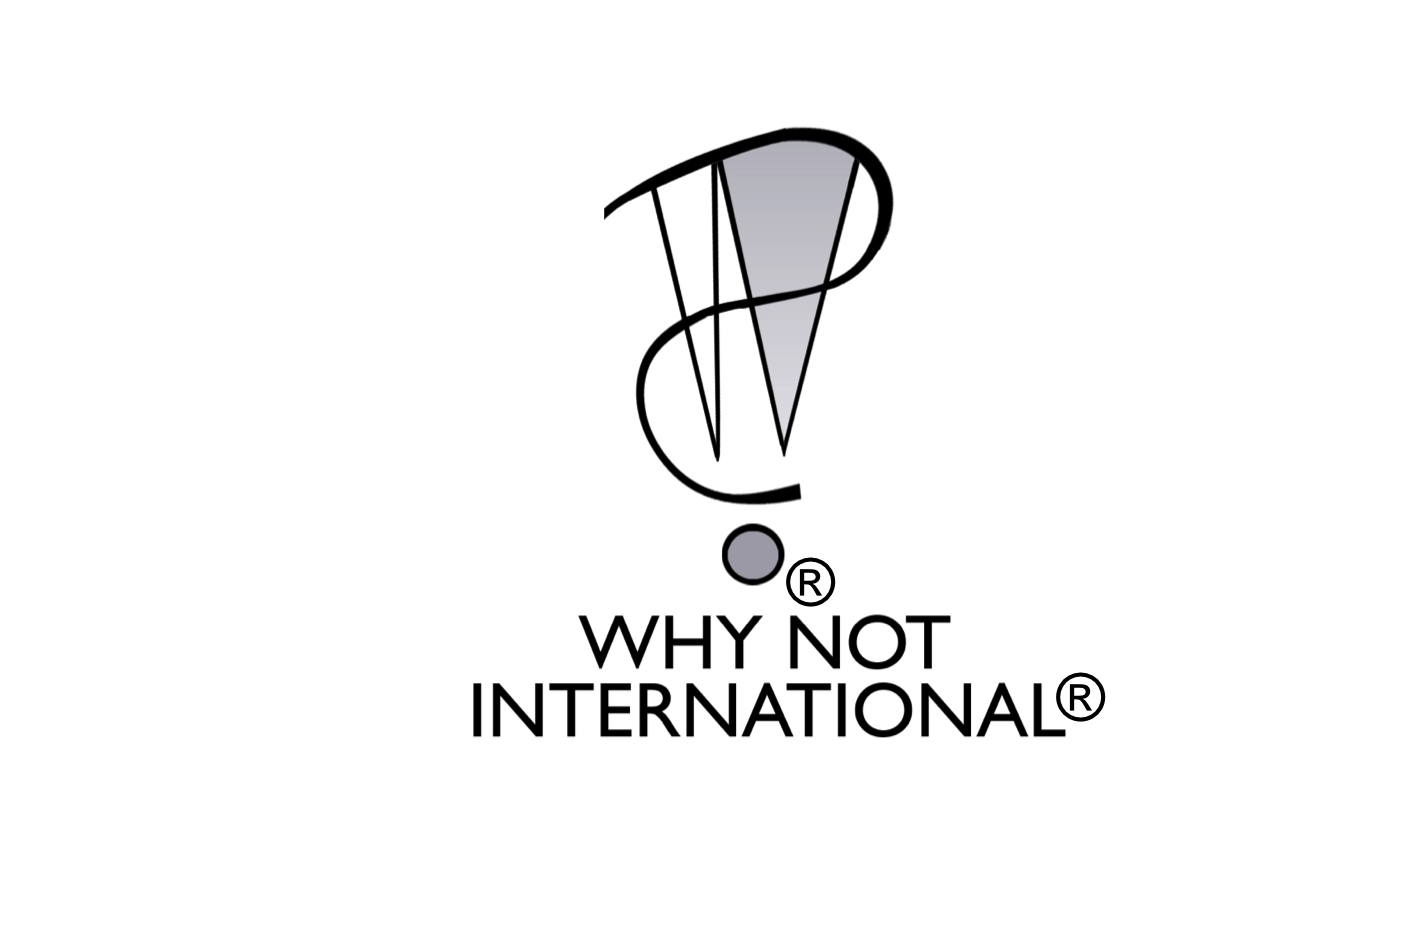 Why Not International